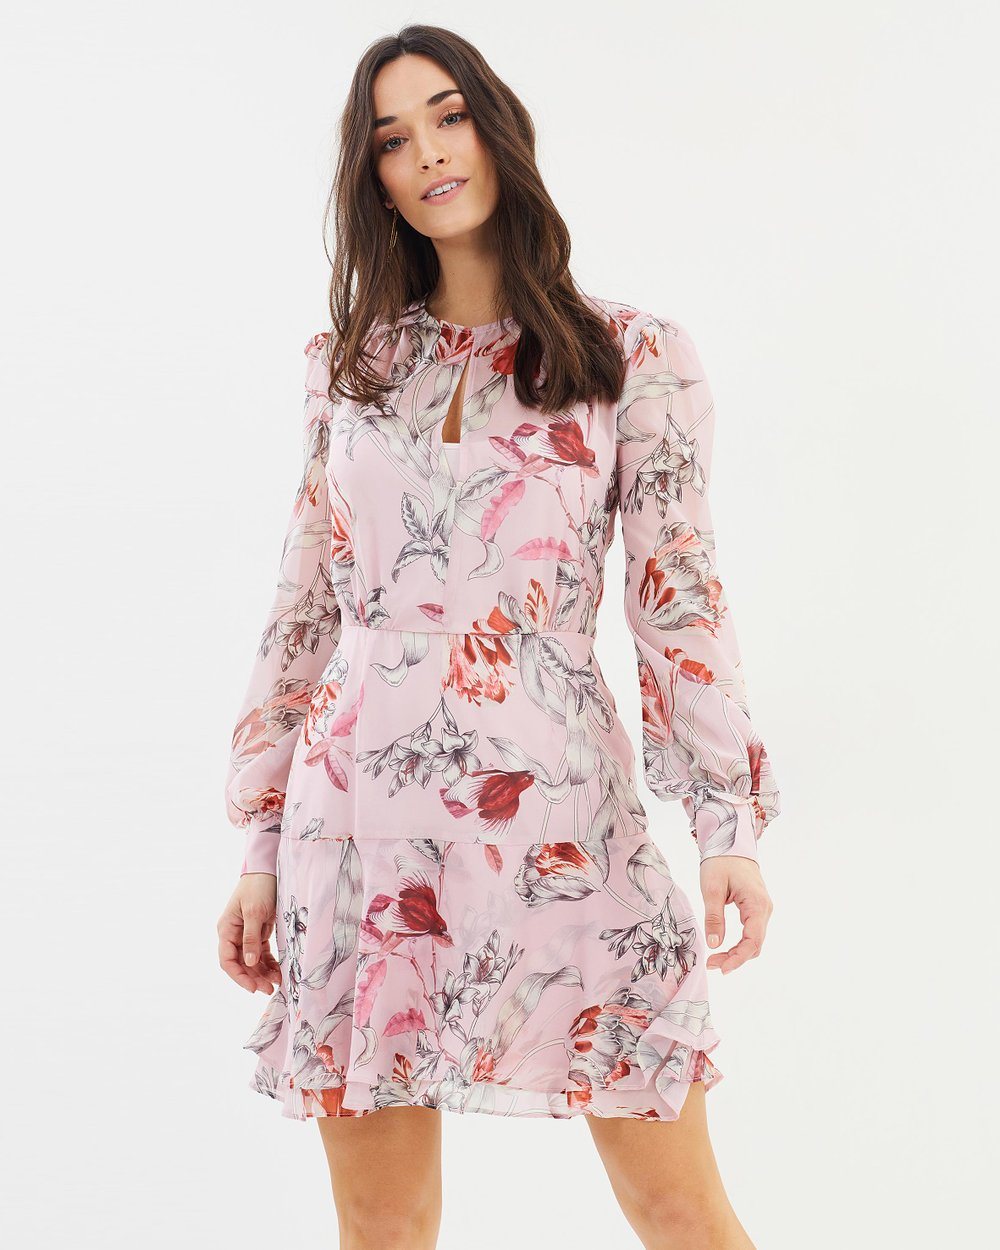 59ee38d5836f8 Fontaine Long Sleeve Mini Dress by Cooper St Online